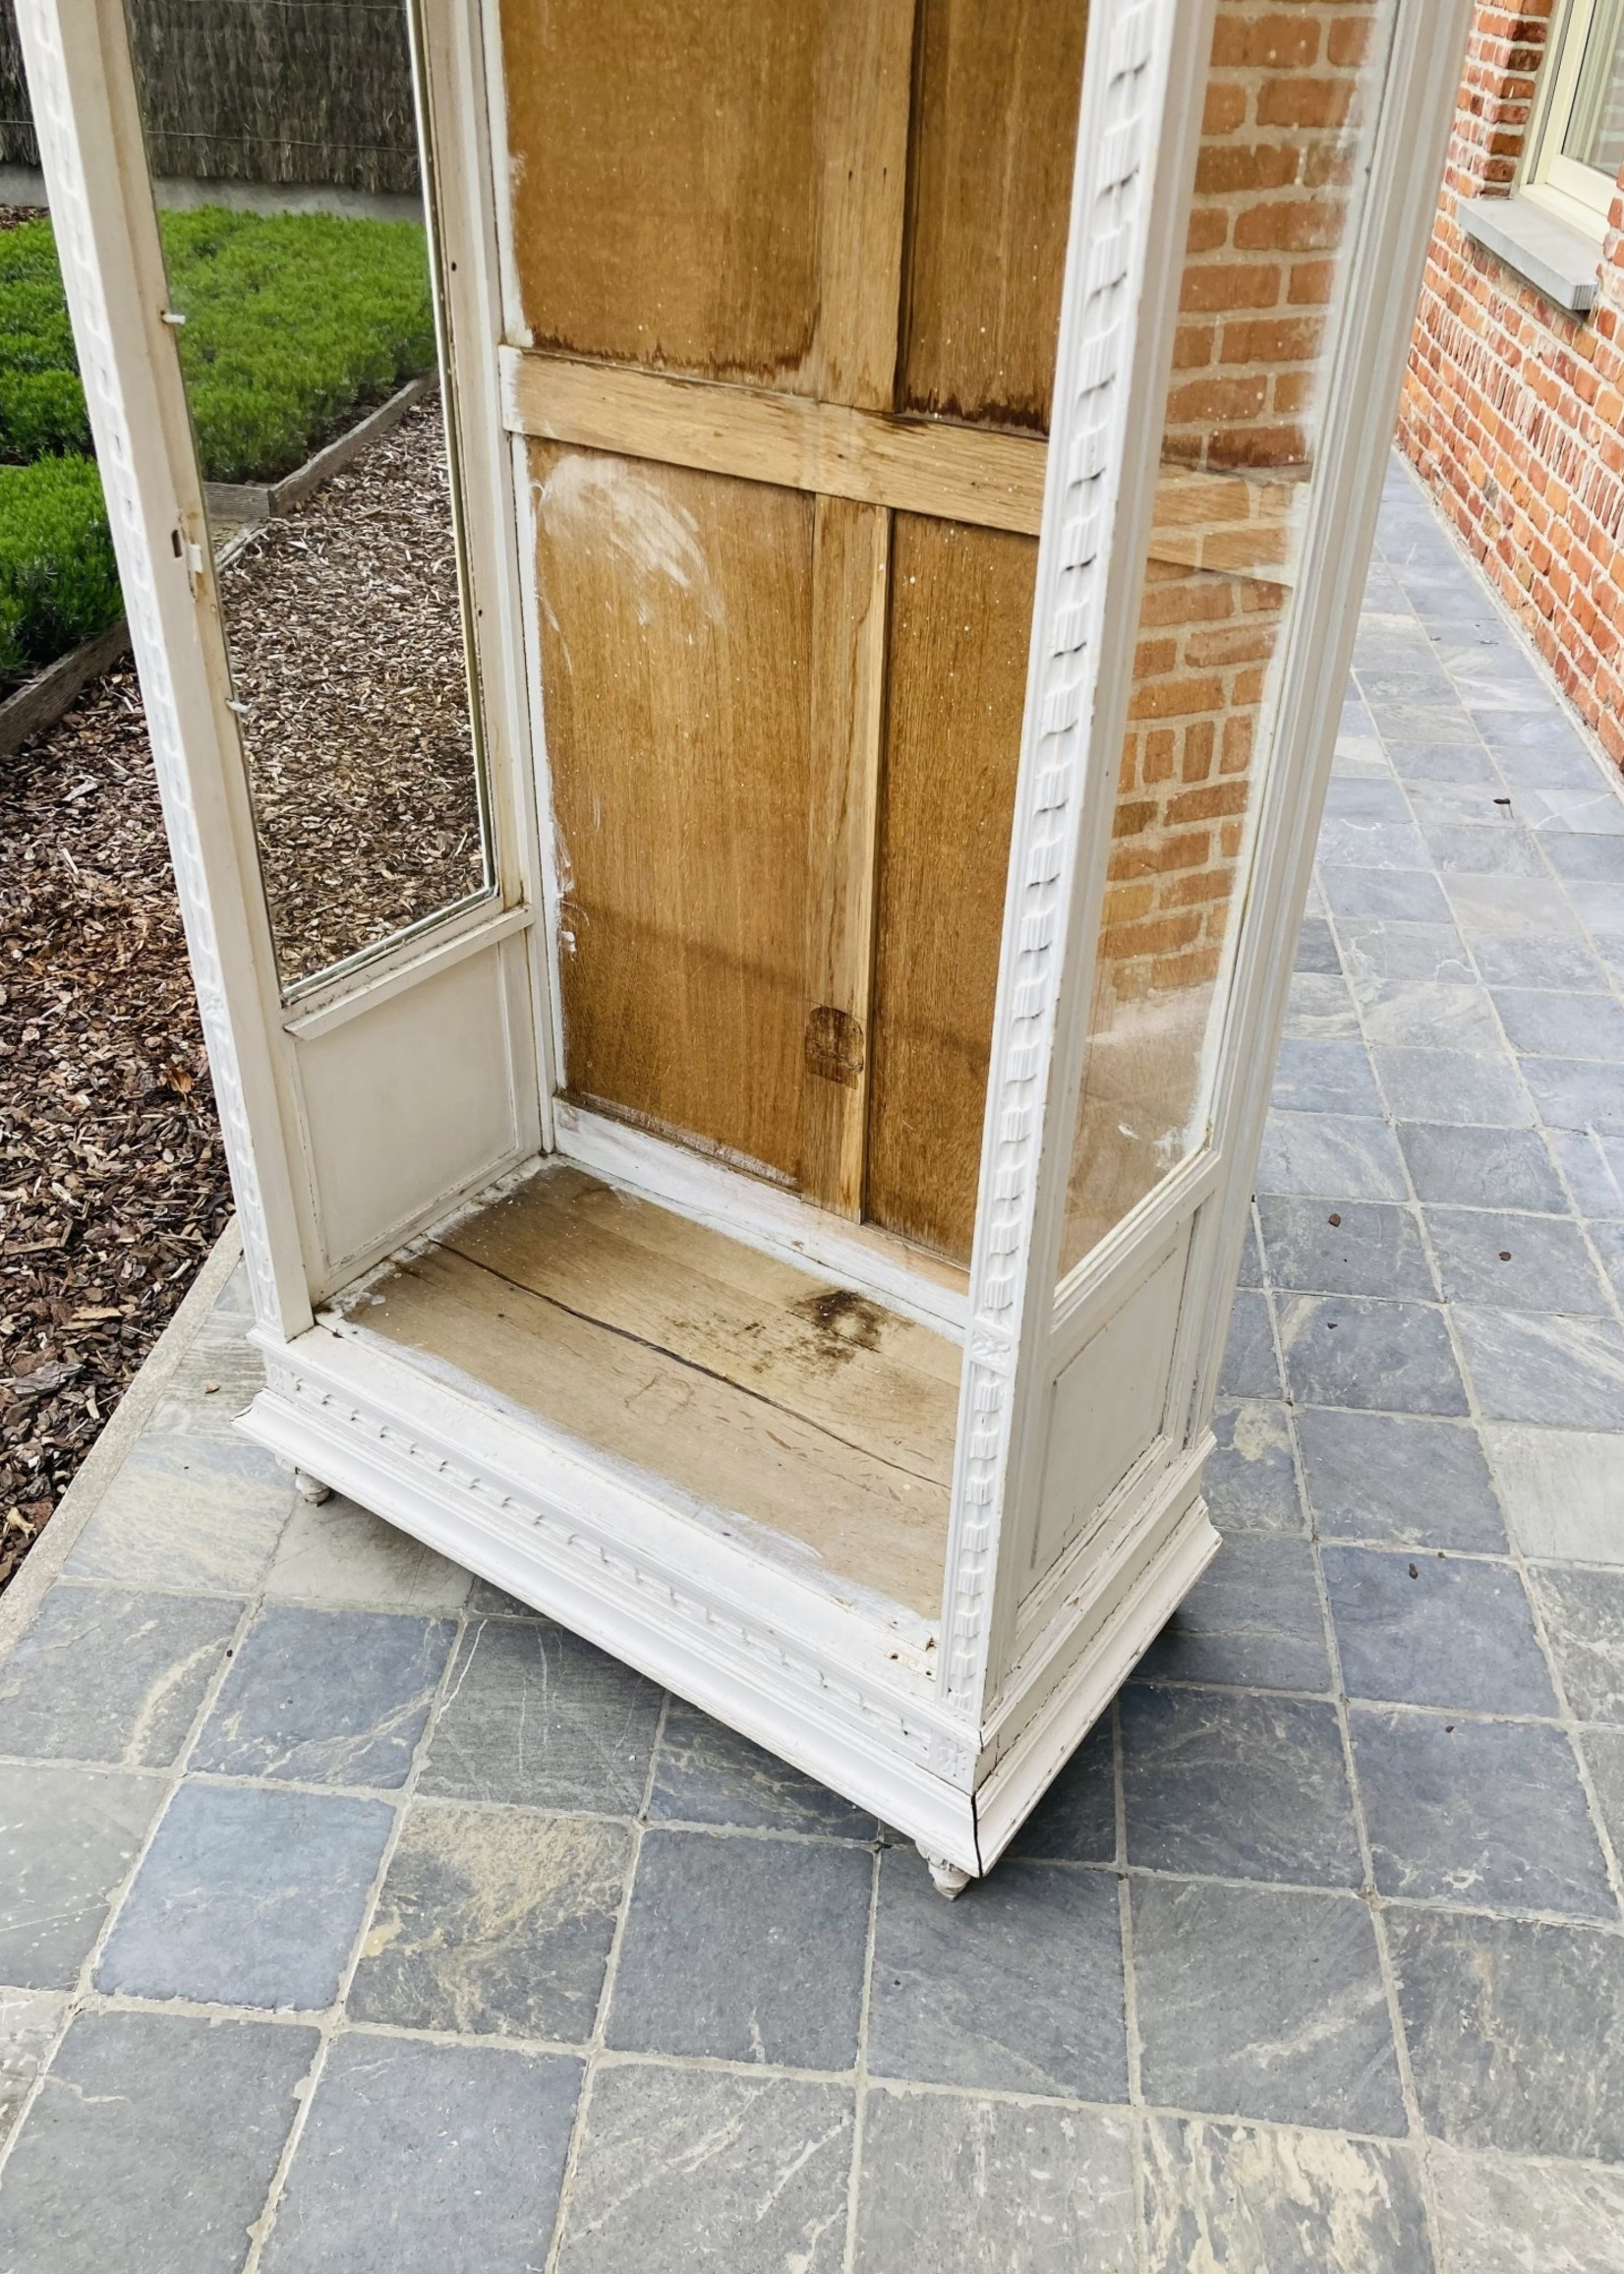 Antique white Cabinet with glass sides